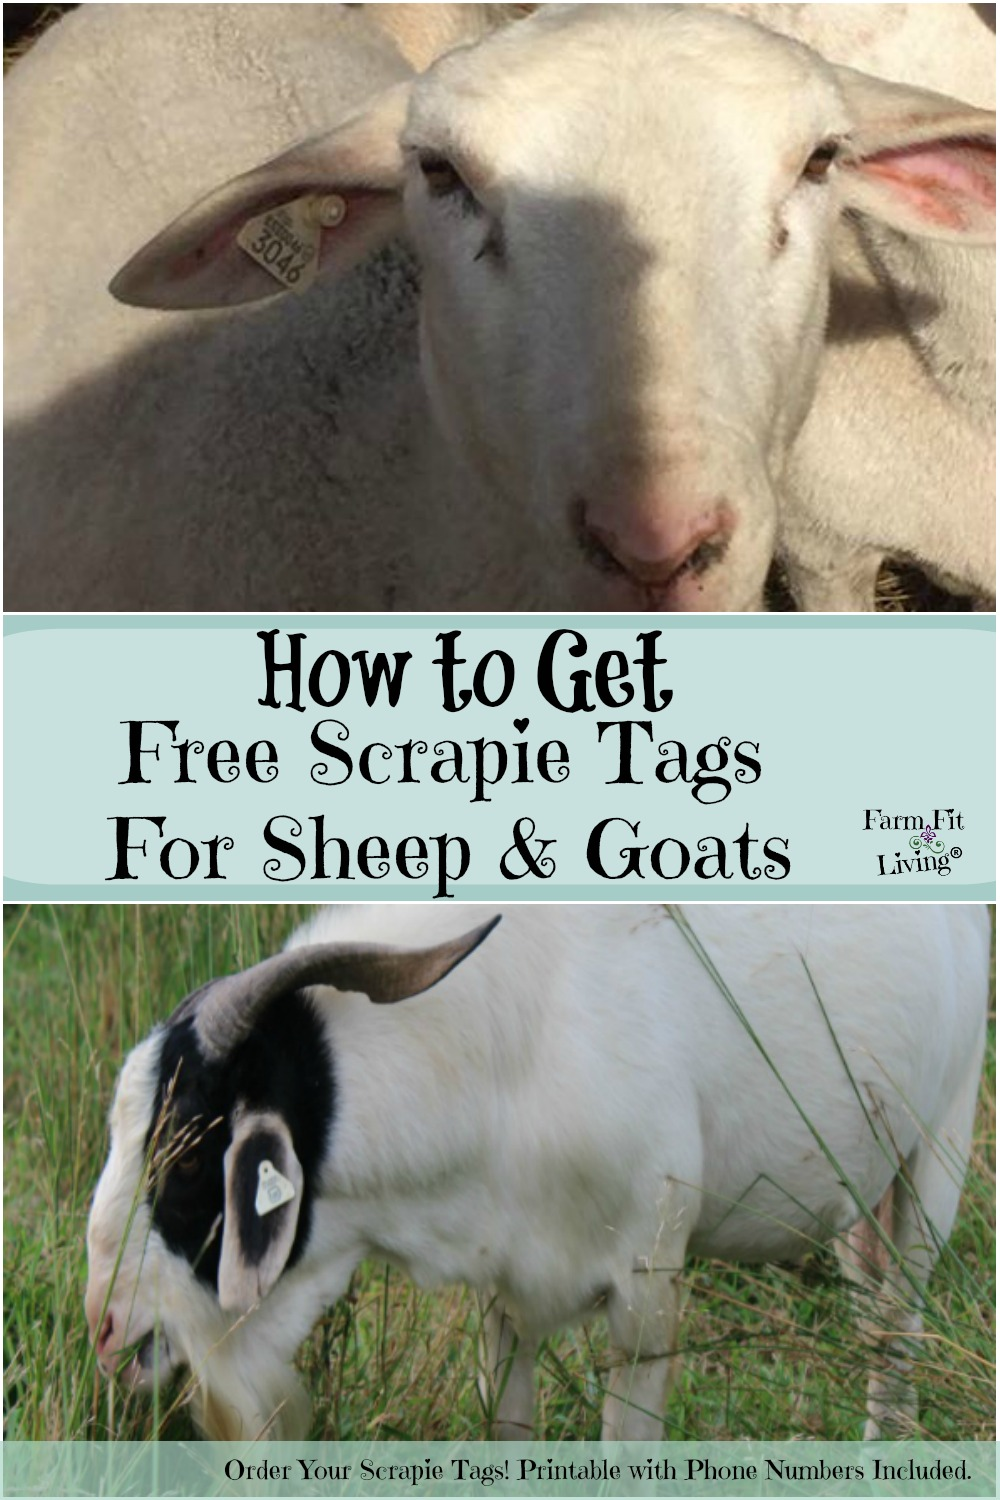 hot to get free scrapie tags for sheep and goats